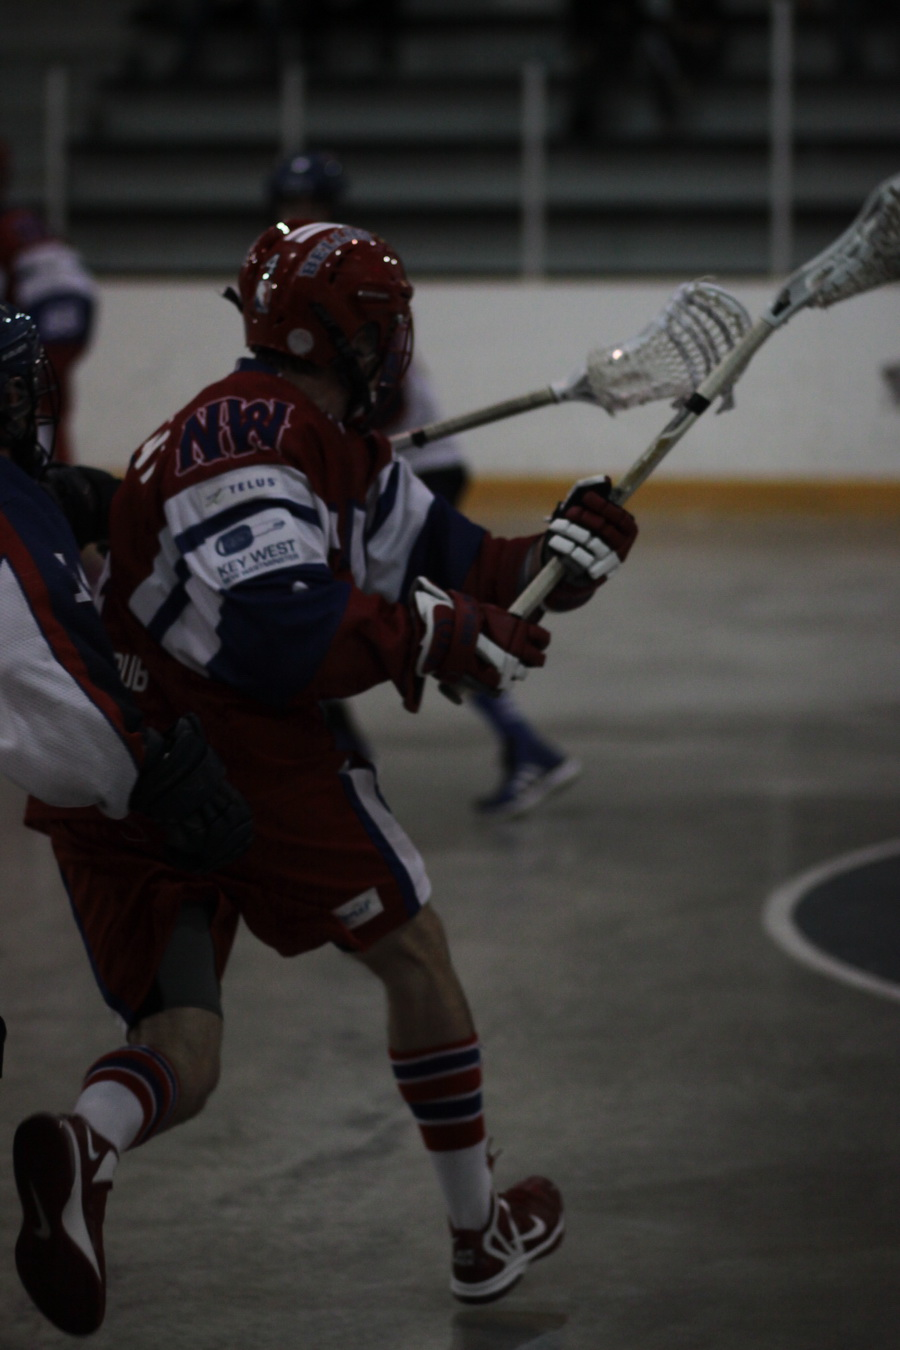 Chet Koneczny pro lacrosse player performing a face-dodge, showing good ball protection using a dodge technique